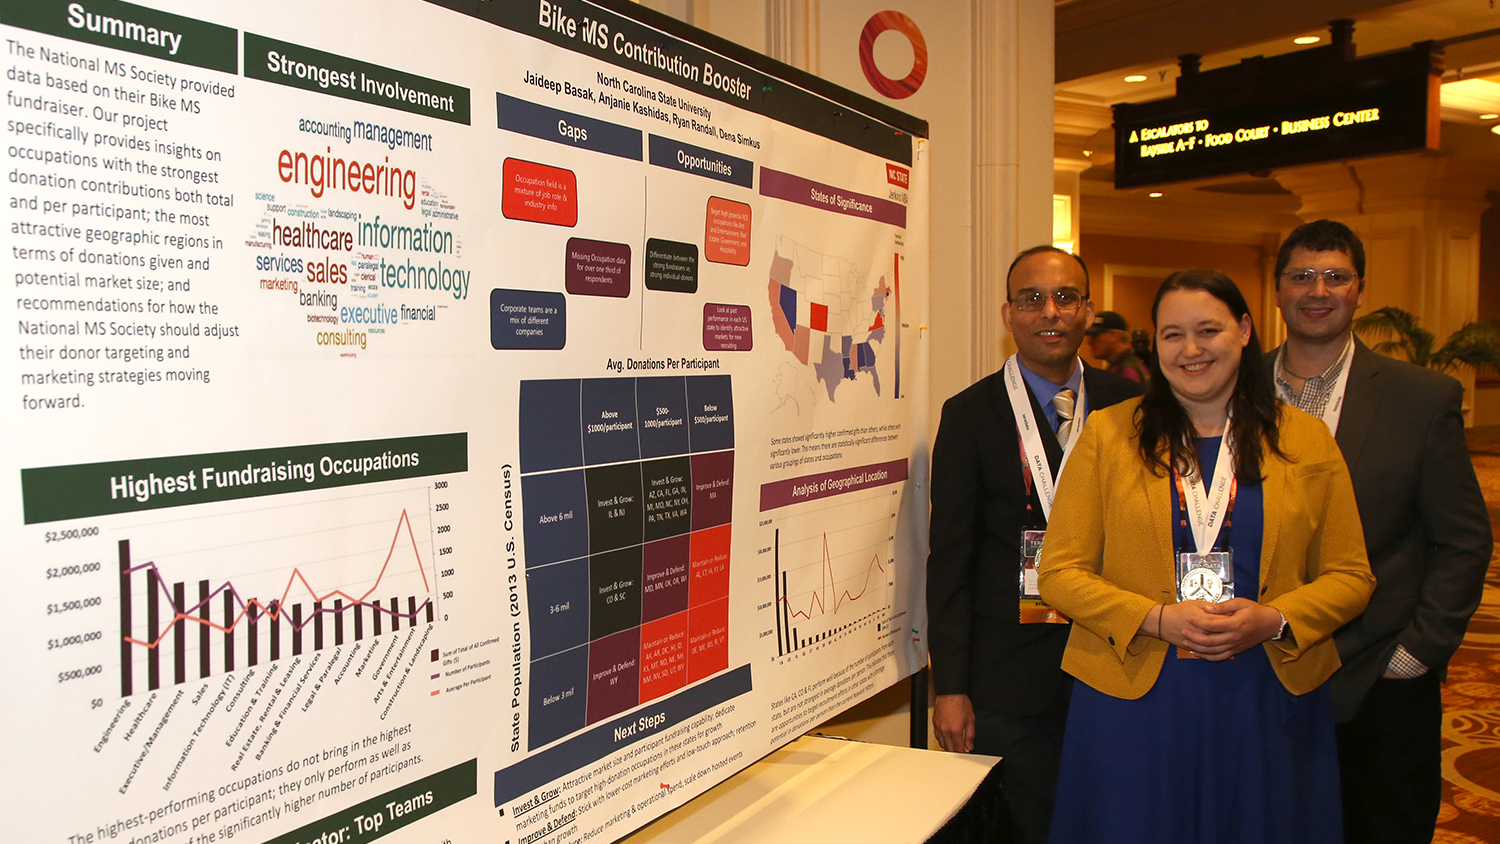 NC Jenkins MBA TUN team members Jaideep Basak, Dena Simkus and Ryan Randall, with their poster at the TUN 2018 Data Challenge conference. Anjanie Kashidas did not attend the conference. - Photo credit: TUN